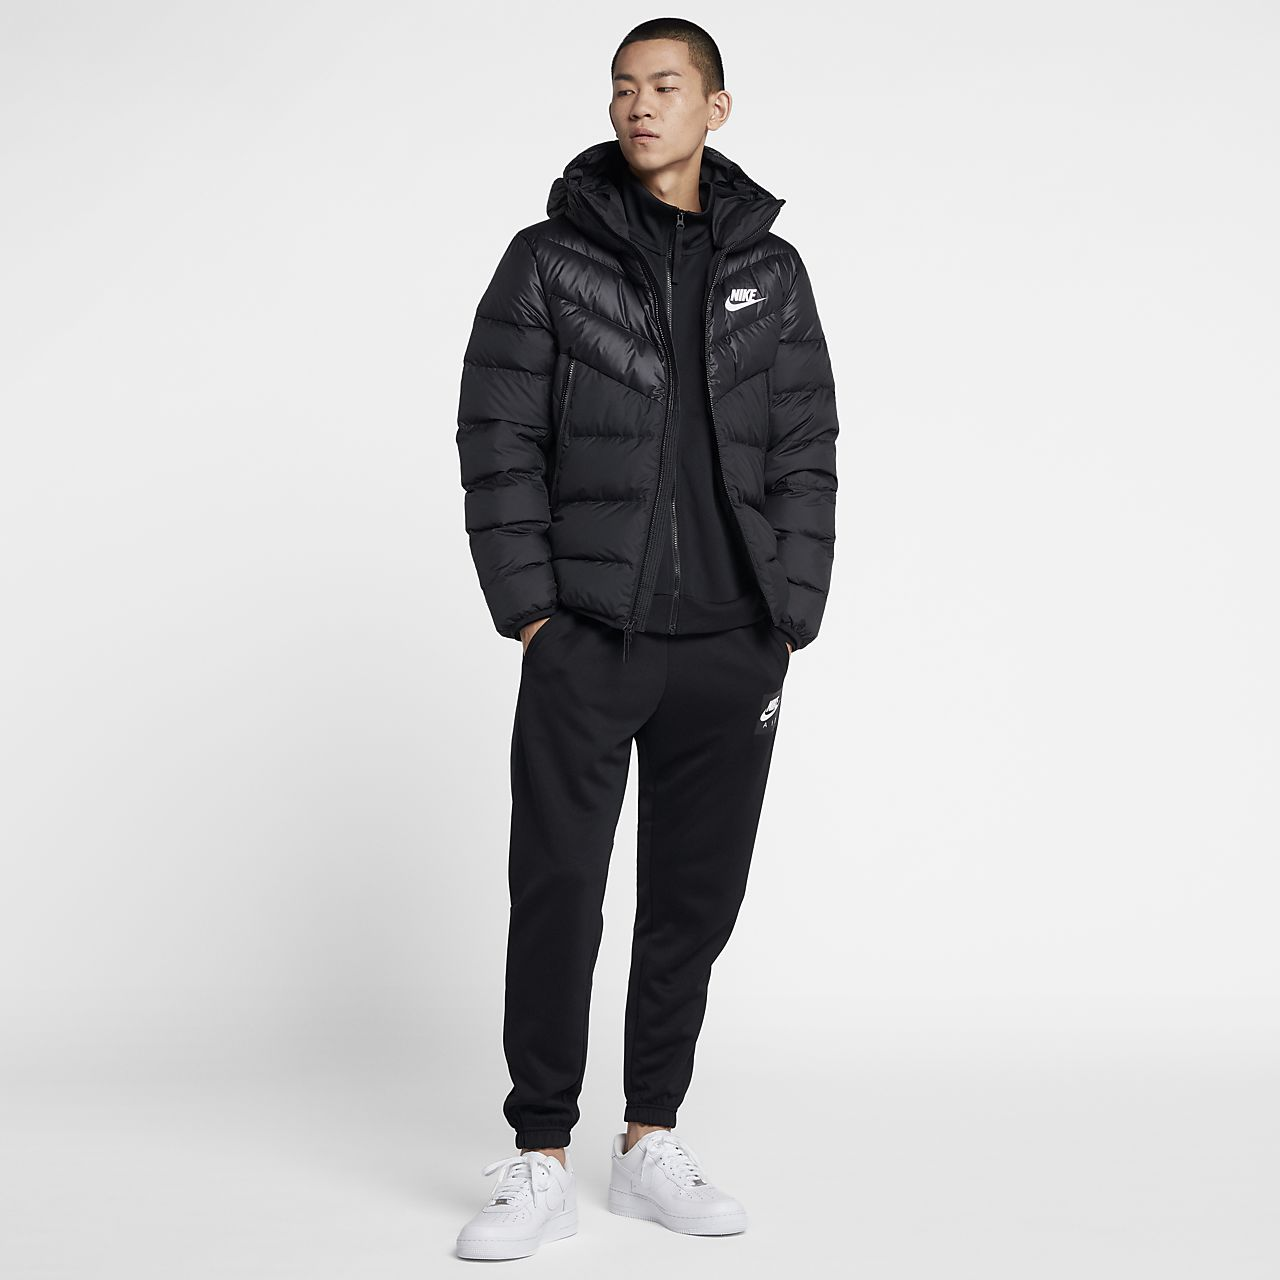 884eb9f82 Nike Sportswear Windrunner Down-Fill Men's Hooded Jacket